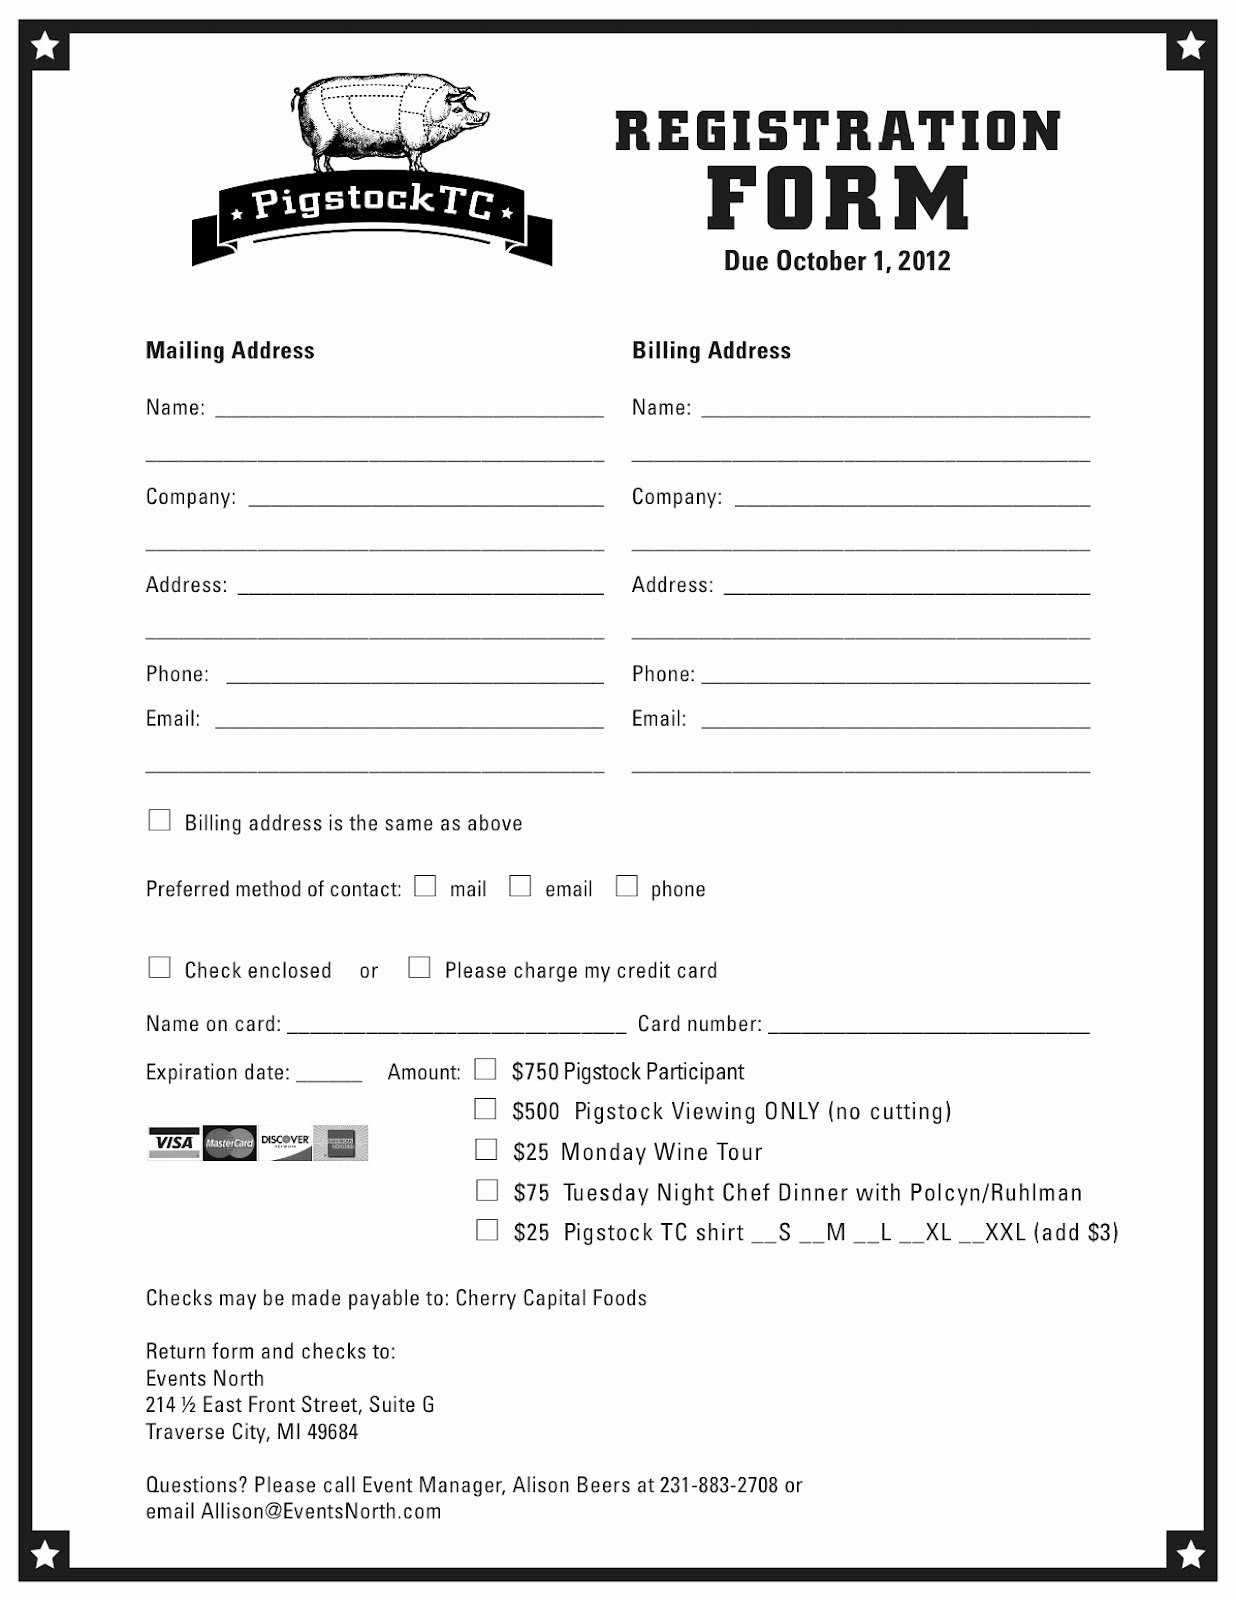 Registration form Template Word New Entry form Template Word